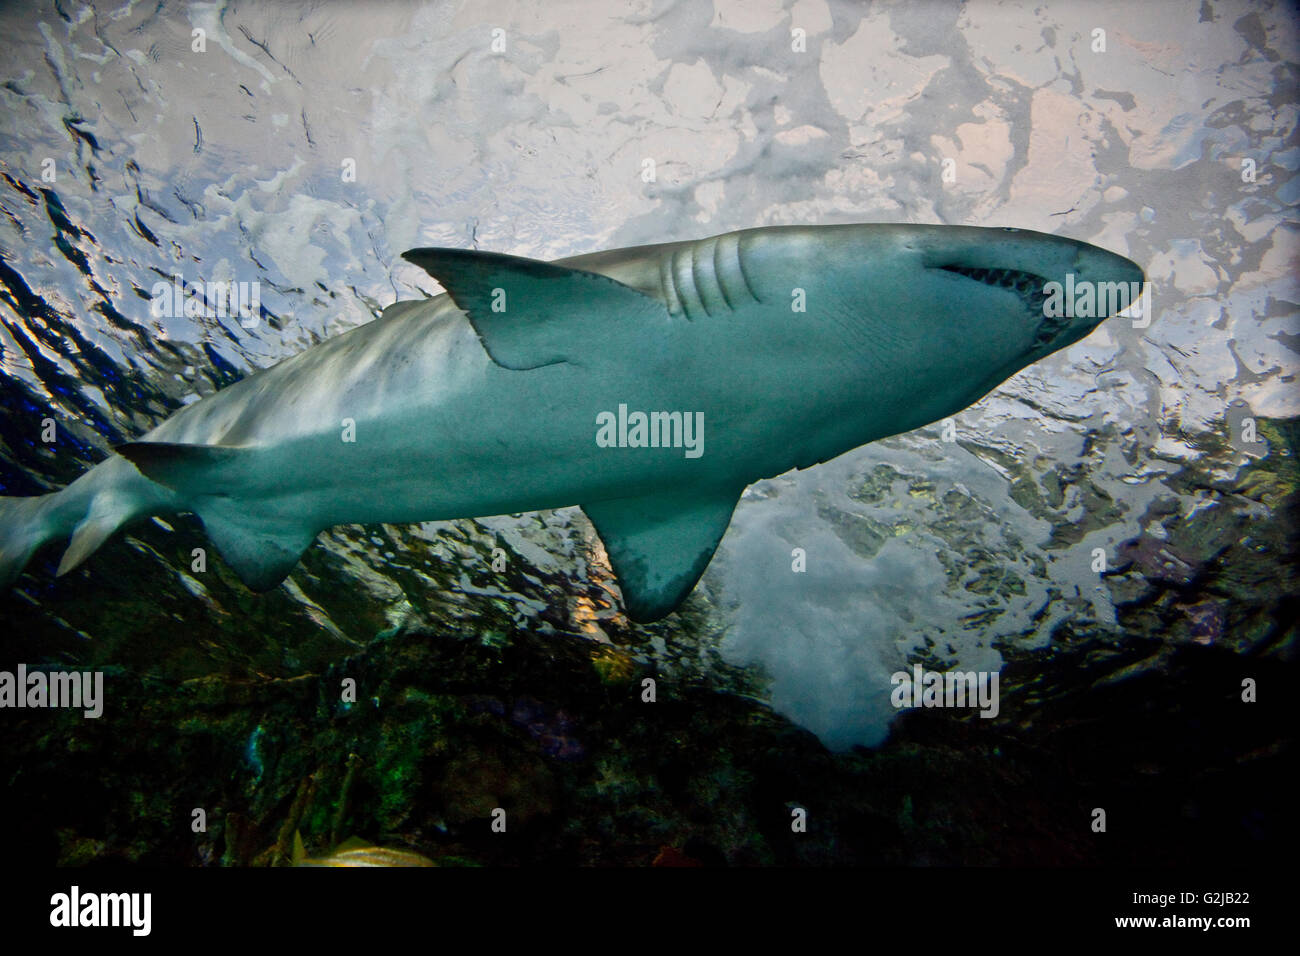 Shark swims by in Dangerous Lagoon at Riply's Aqarium of Canada at base of CN Tower, Toronto, Canada. - Stock Image